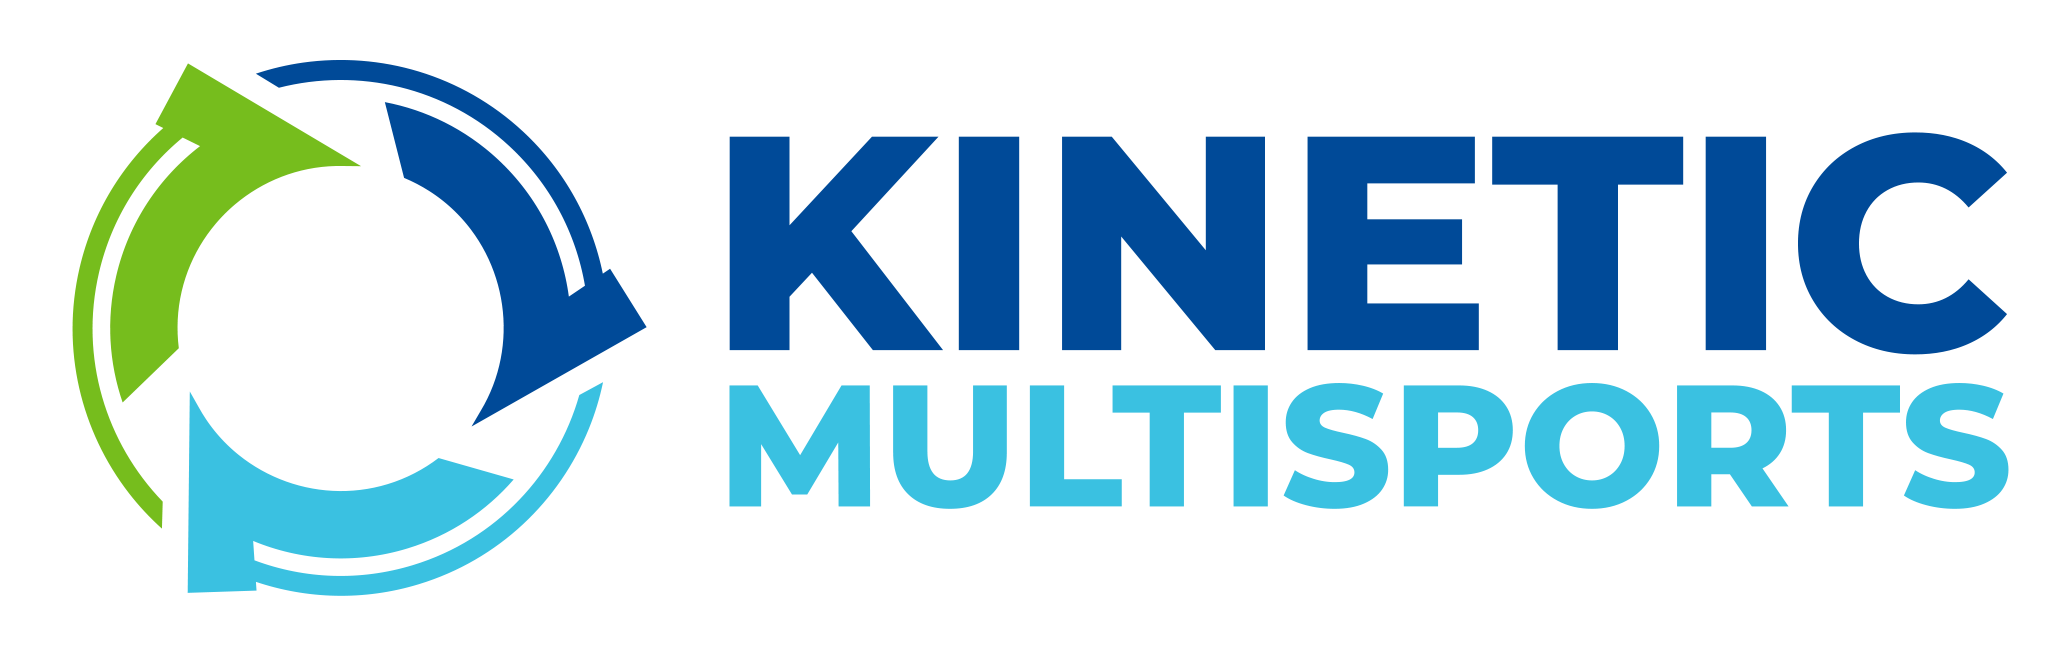 2019 Kinetic Multisports discount code!